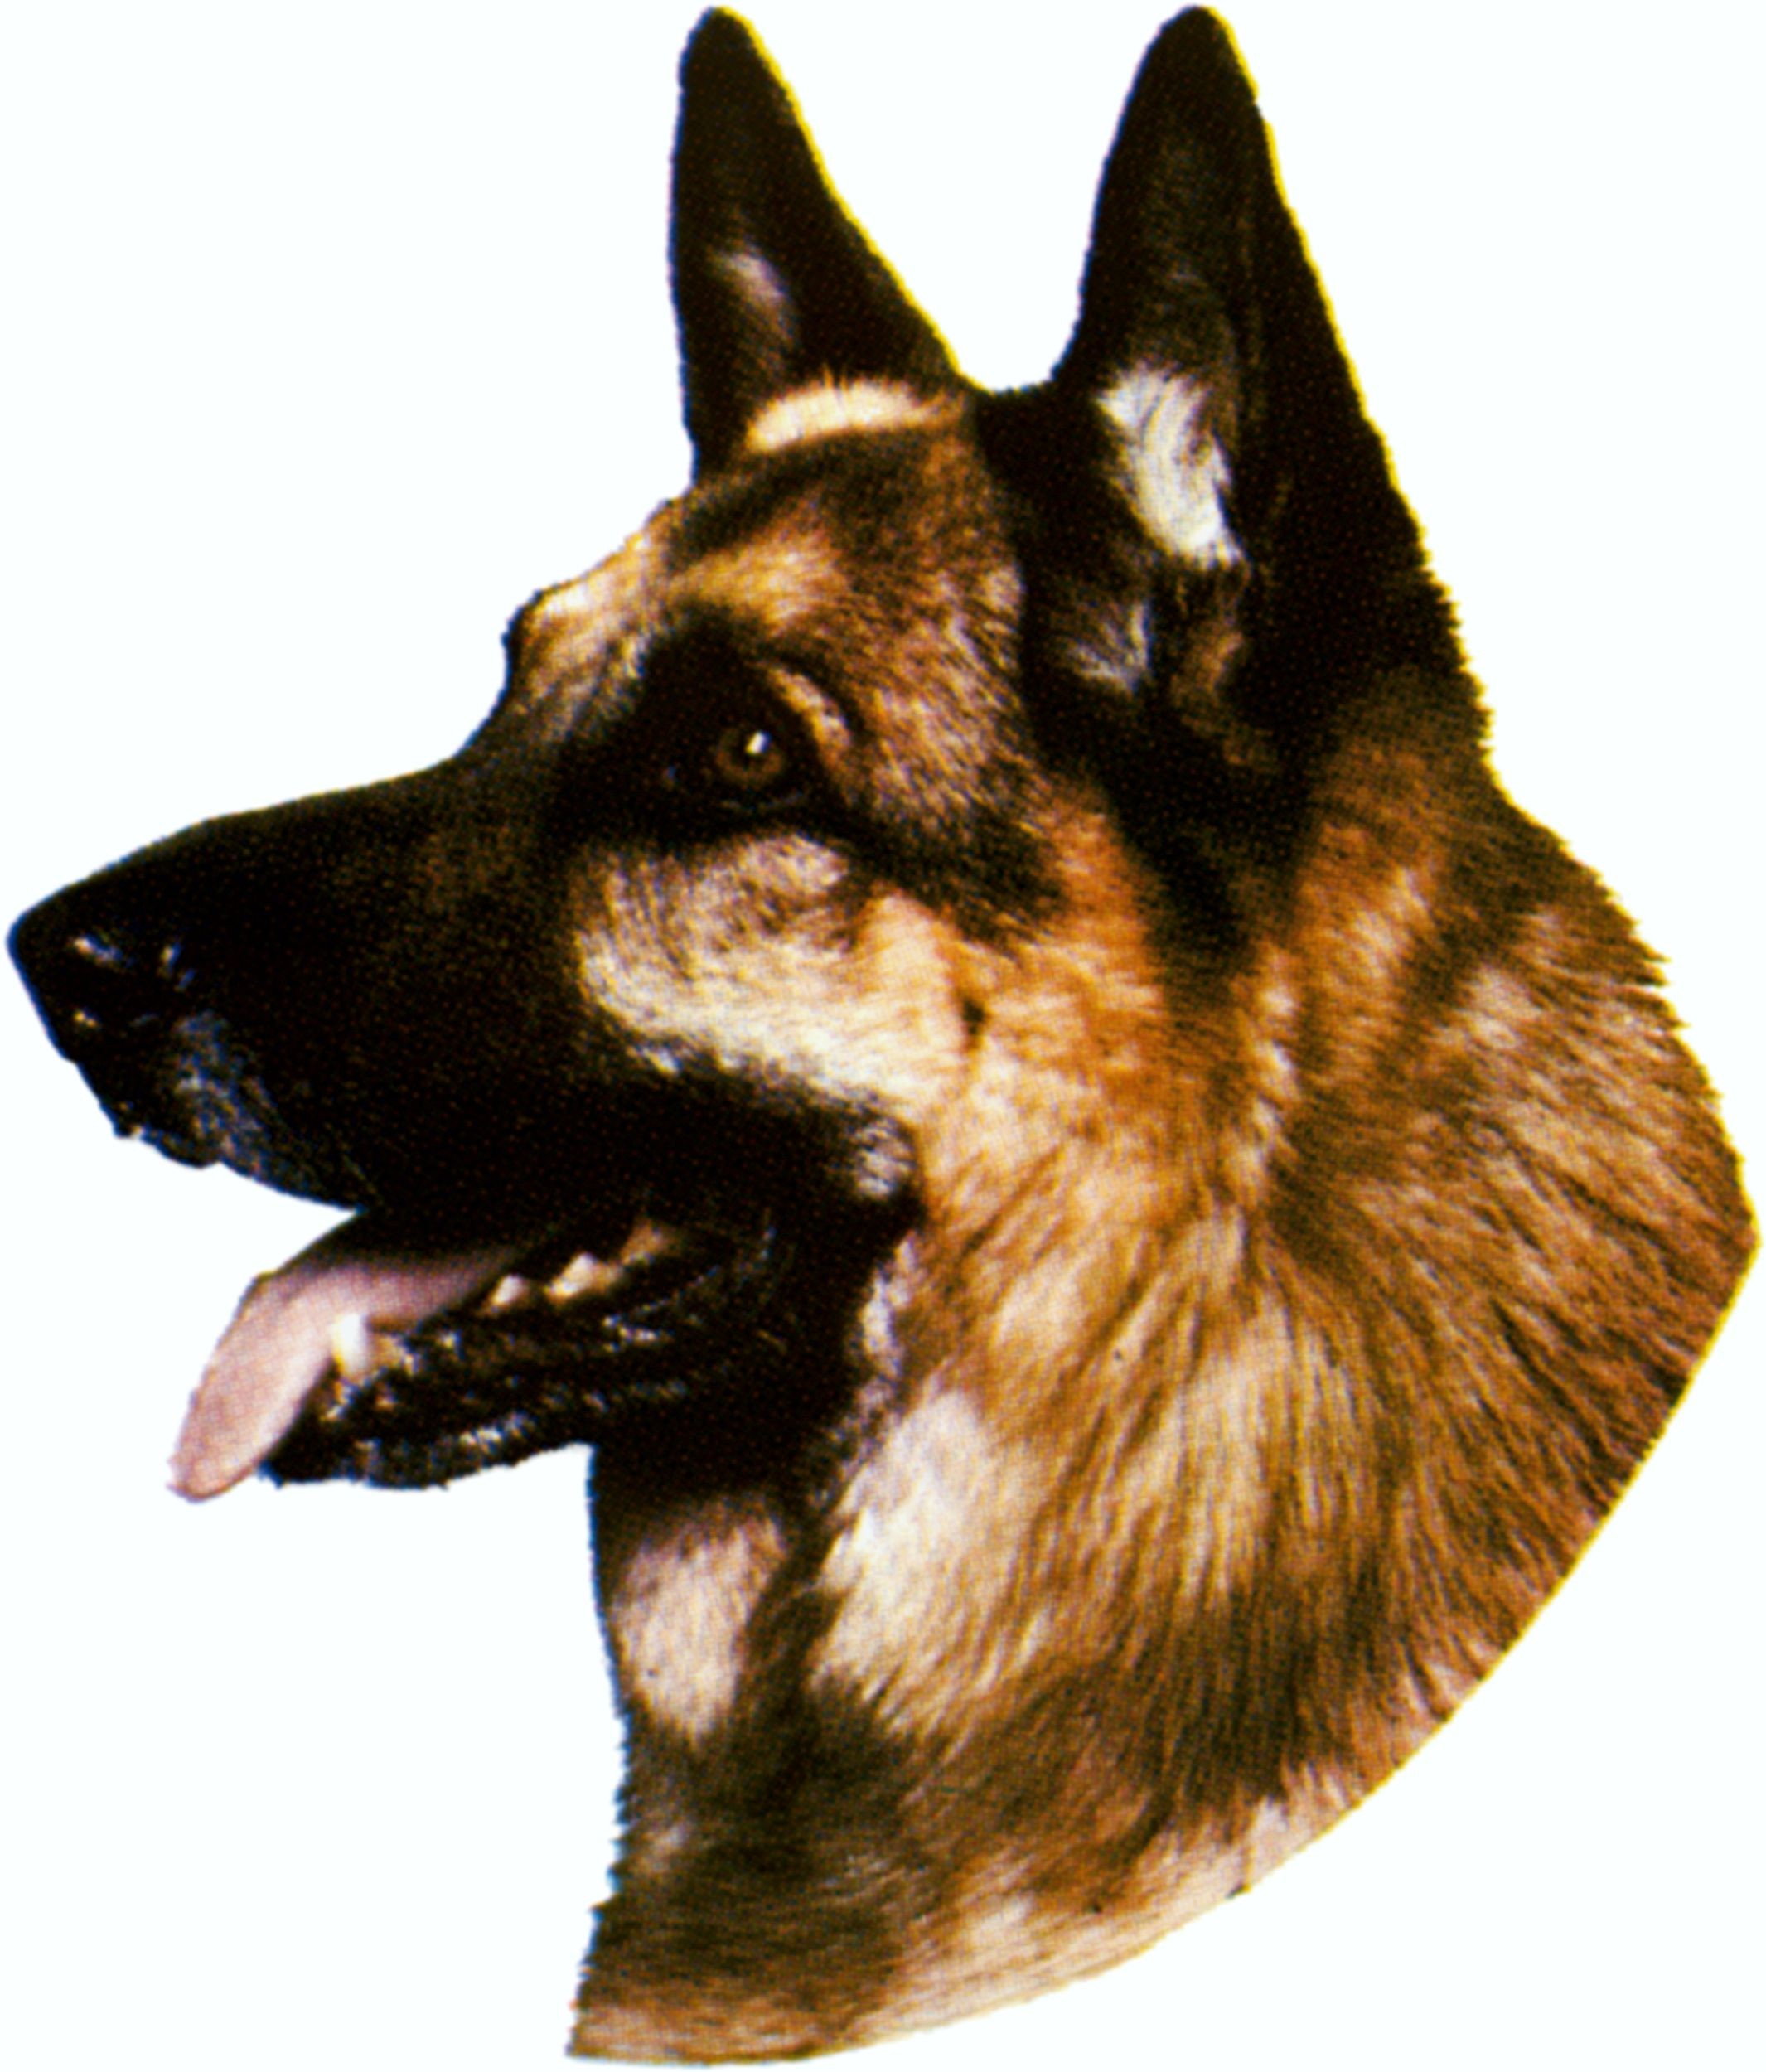 Sticker german shepherd 160 x 140 mm – Bild 1